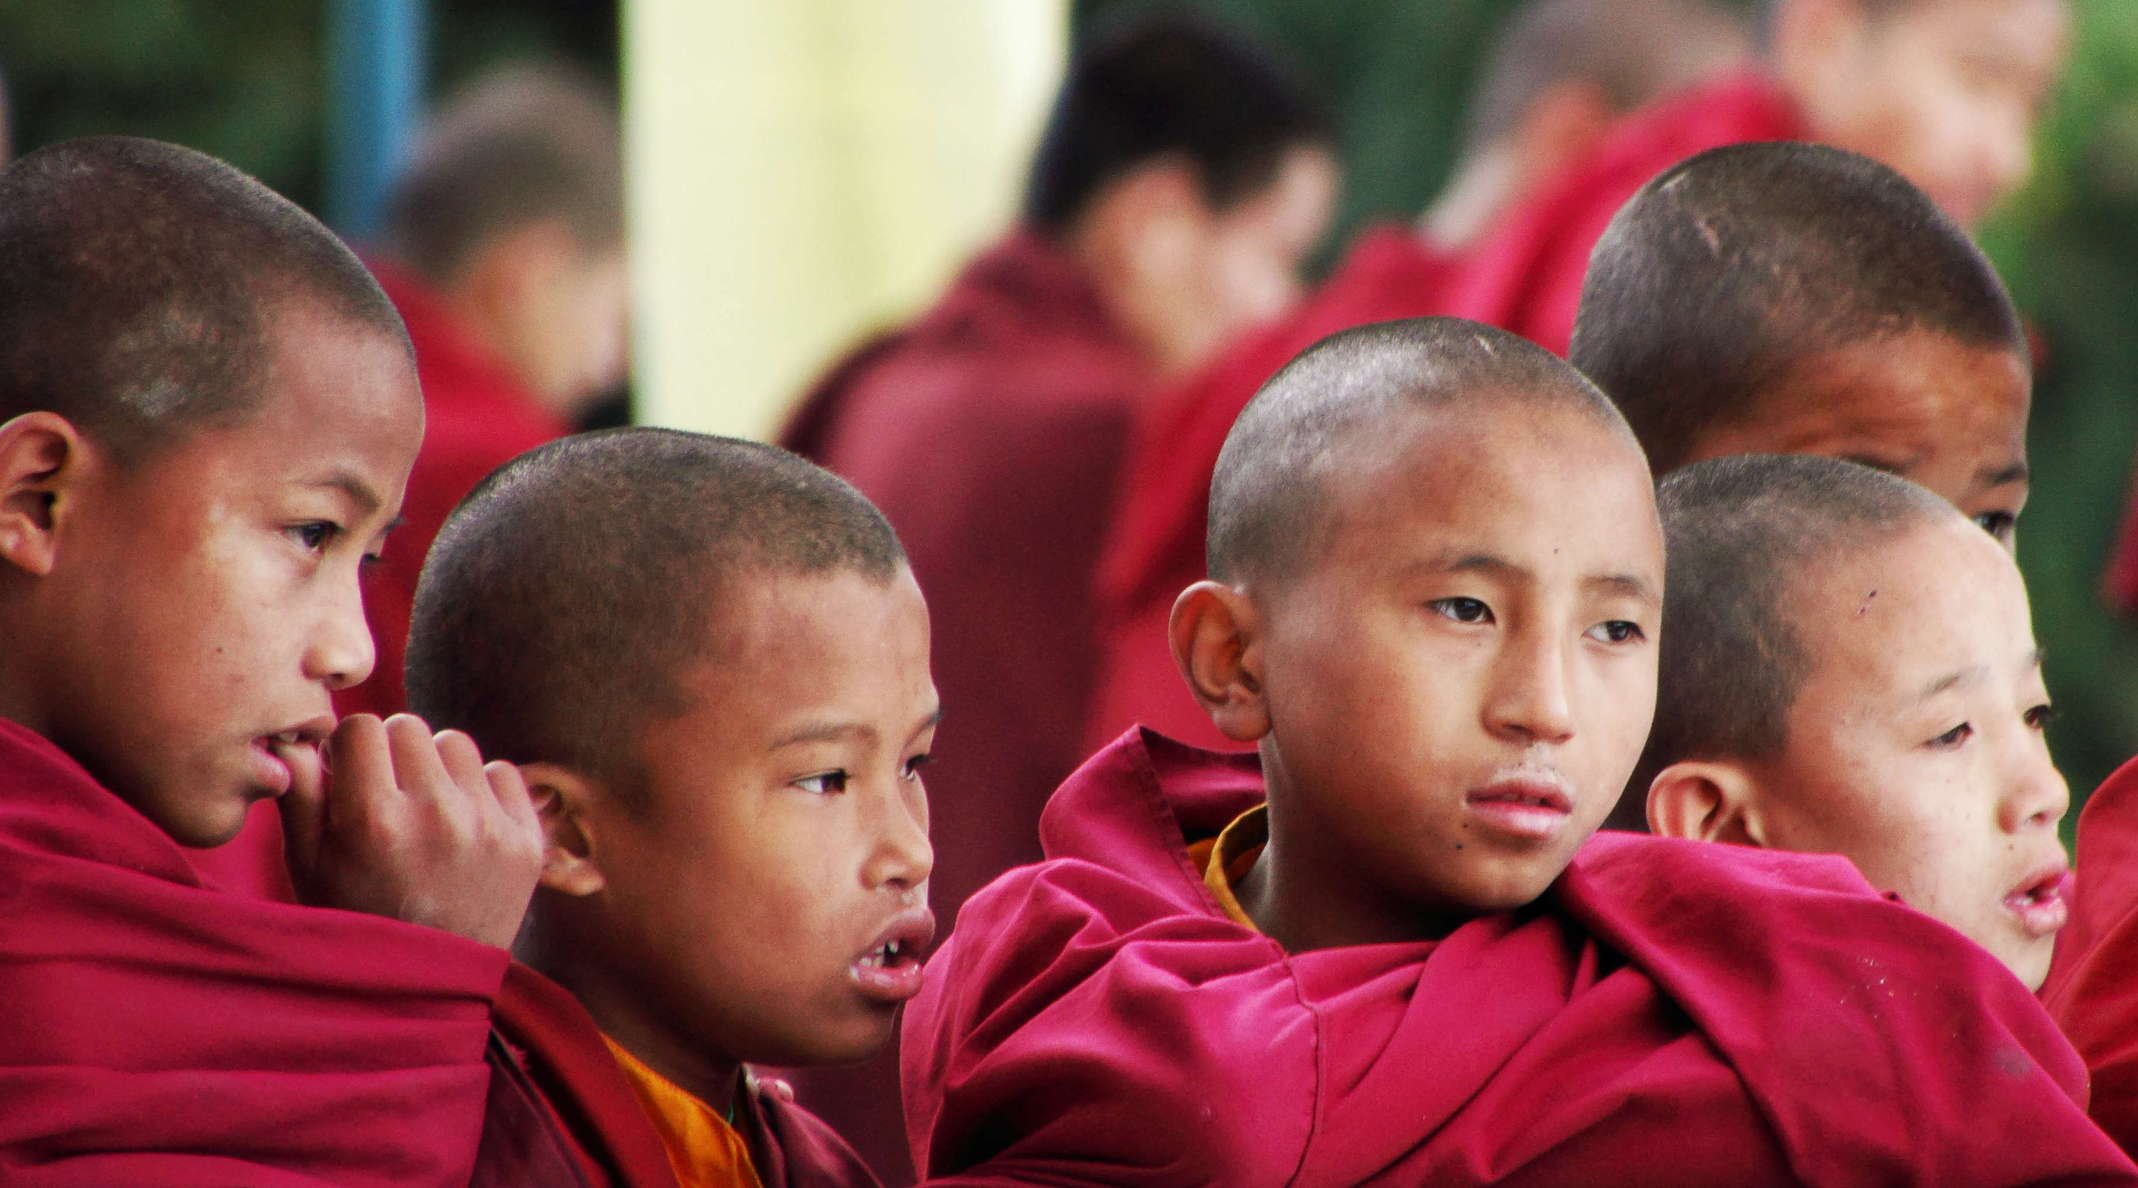 Darjeeling Young Monks At Dali Monastery The World In Images